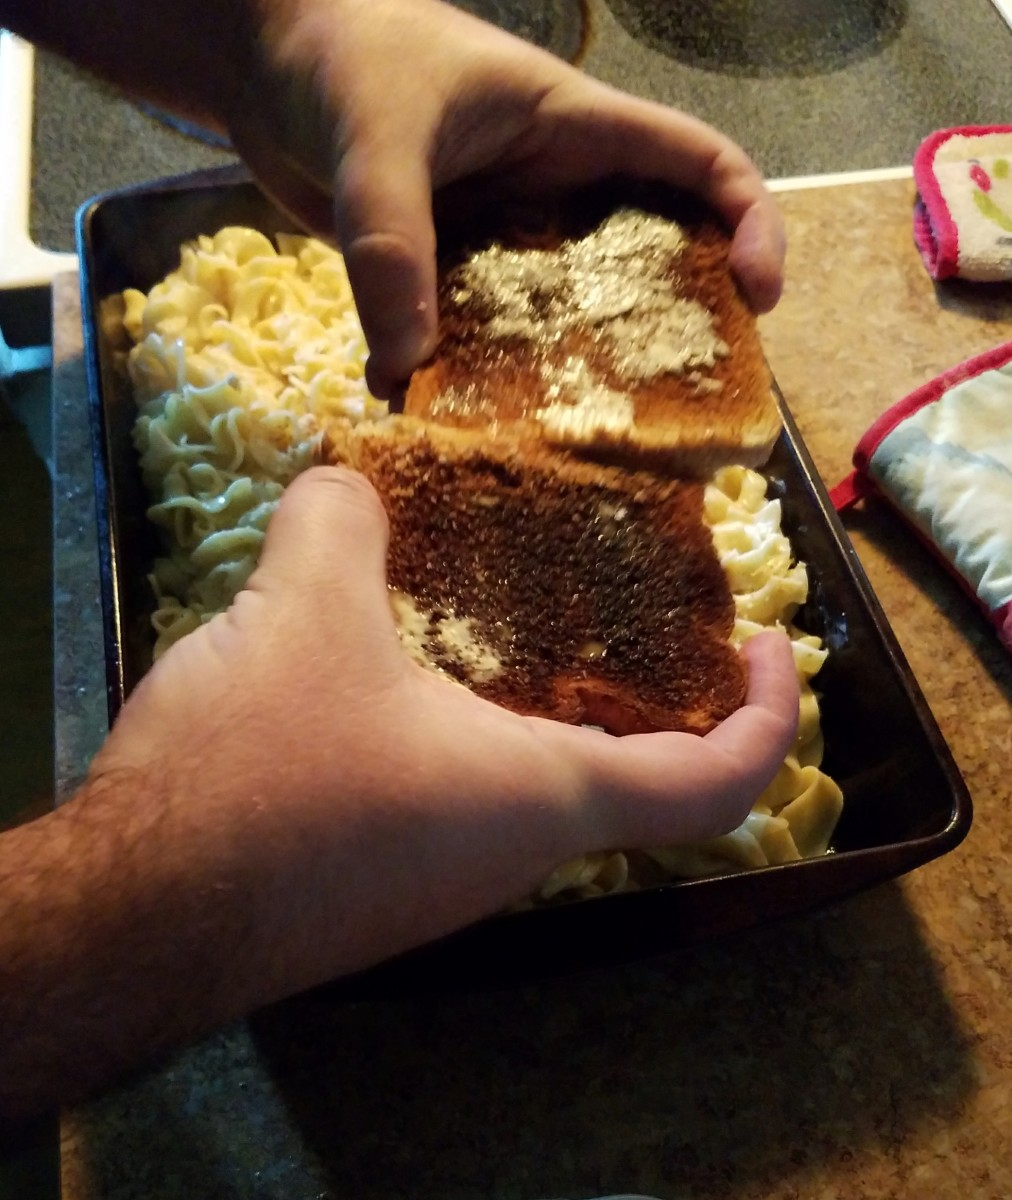 Top with bread crumbs, if desired. To make your own, slide two pieces of toast against each other over top of the macaroni.